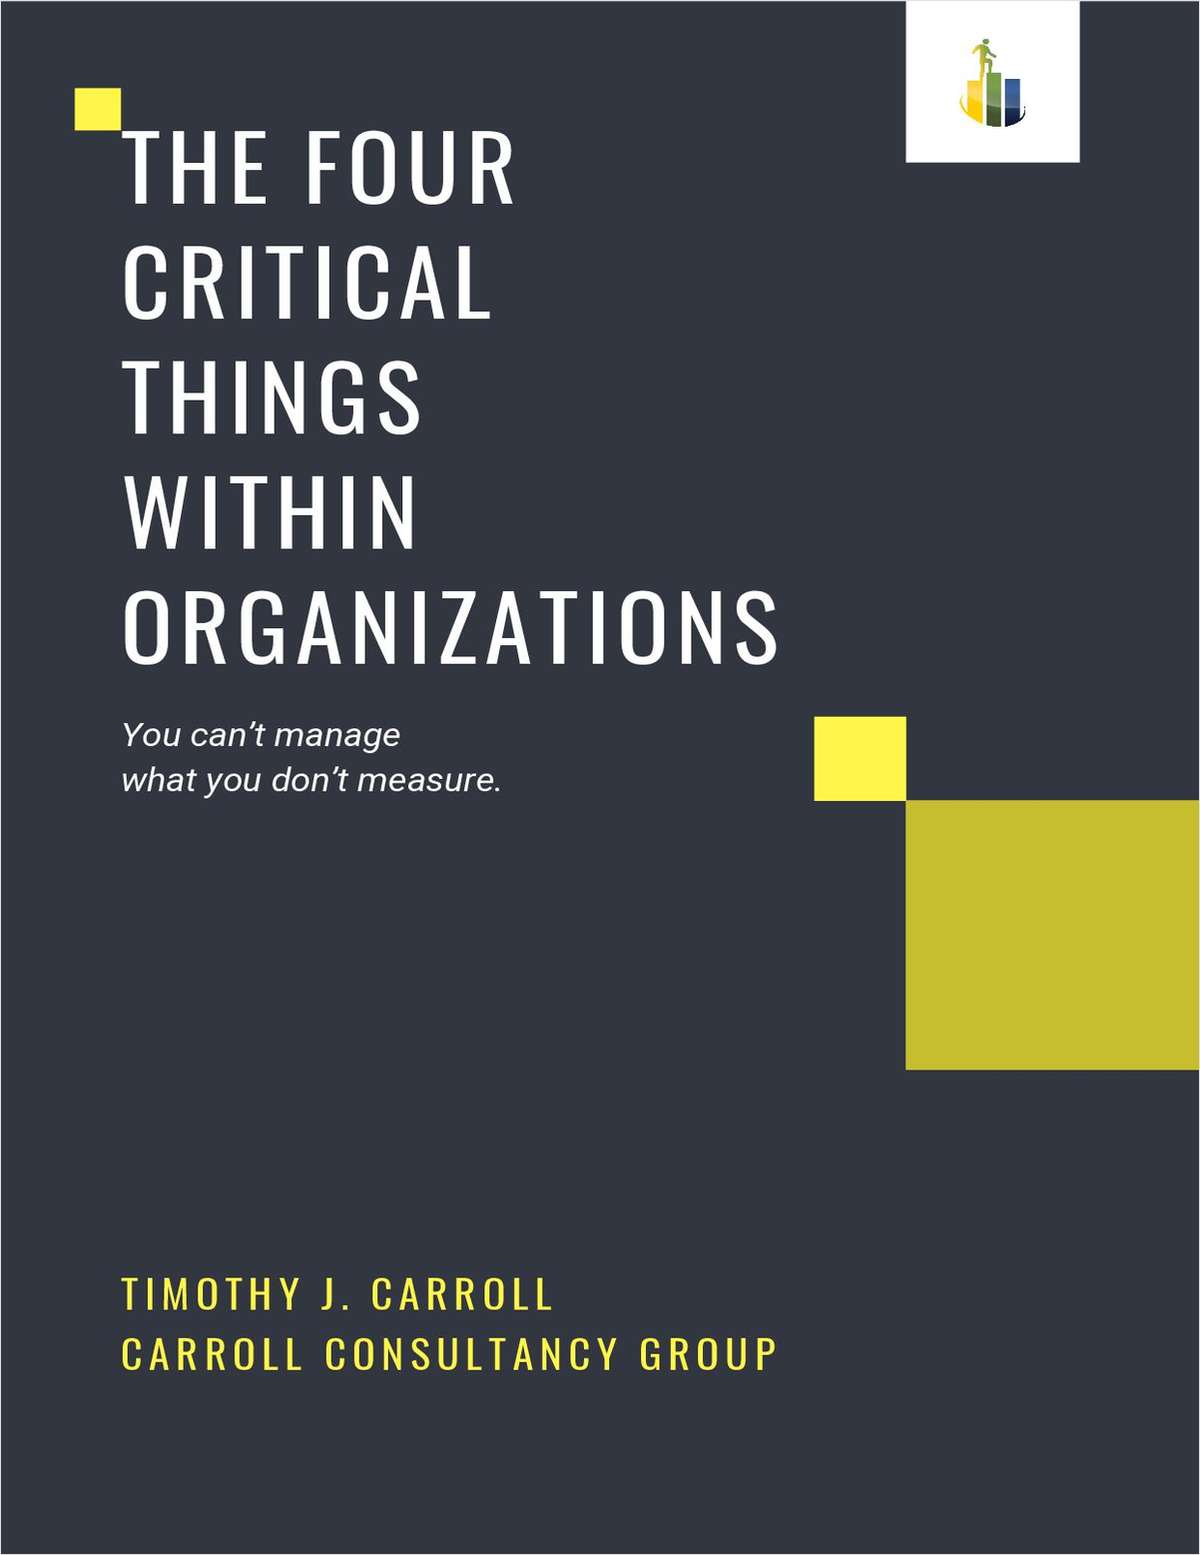 The Four Critical Things within Organizations